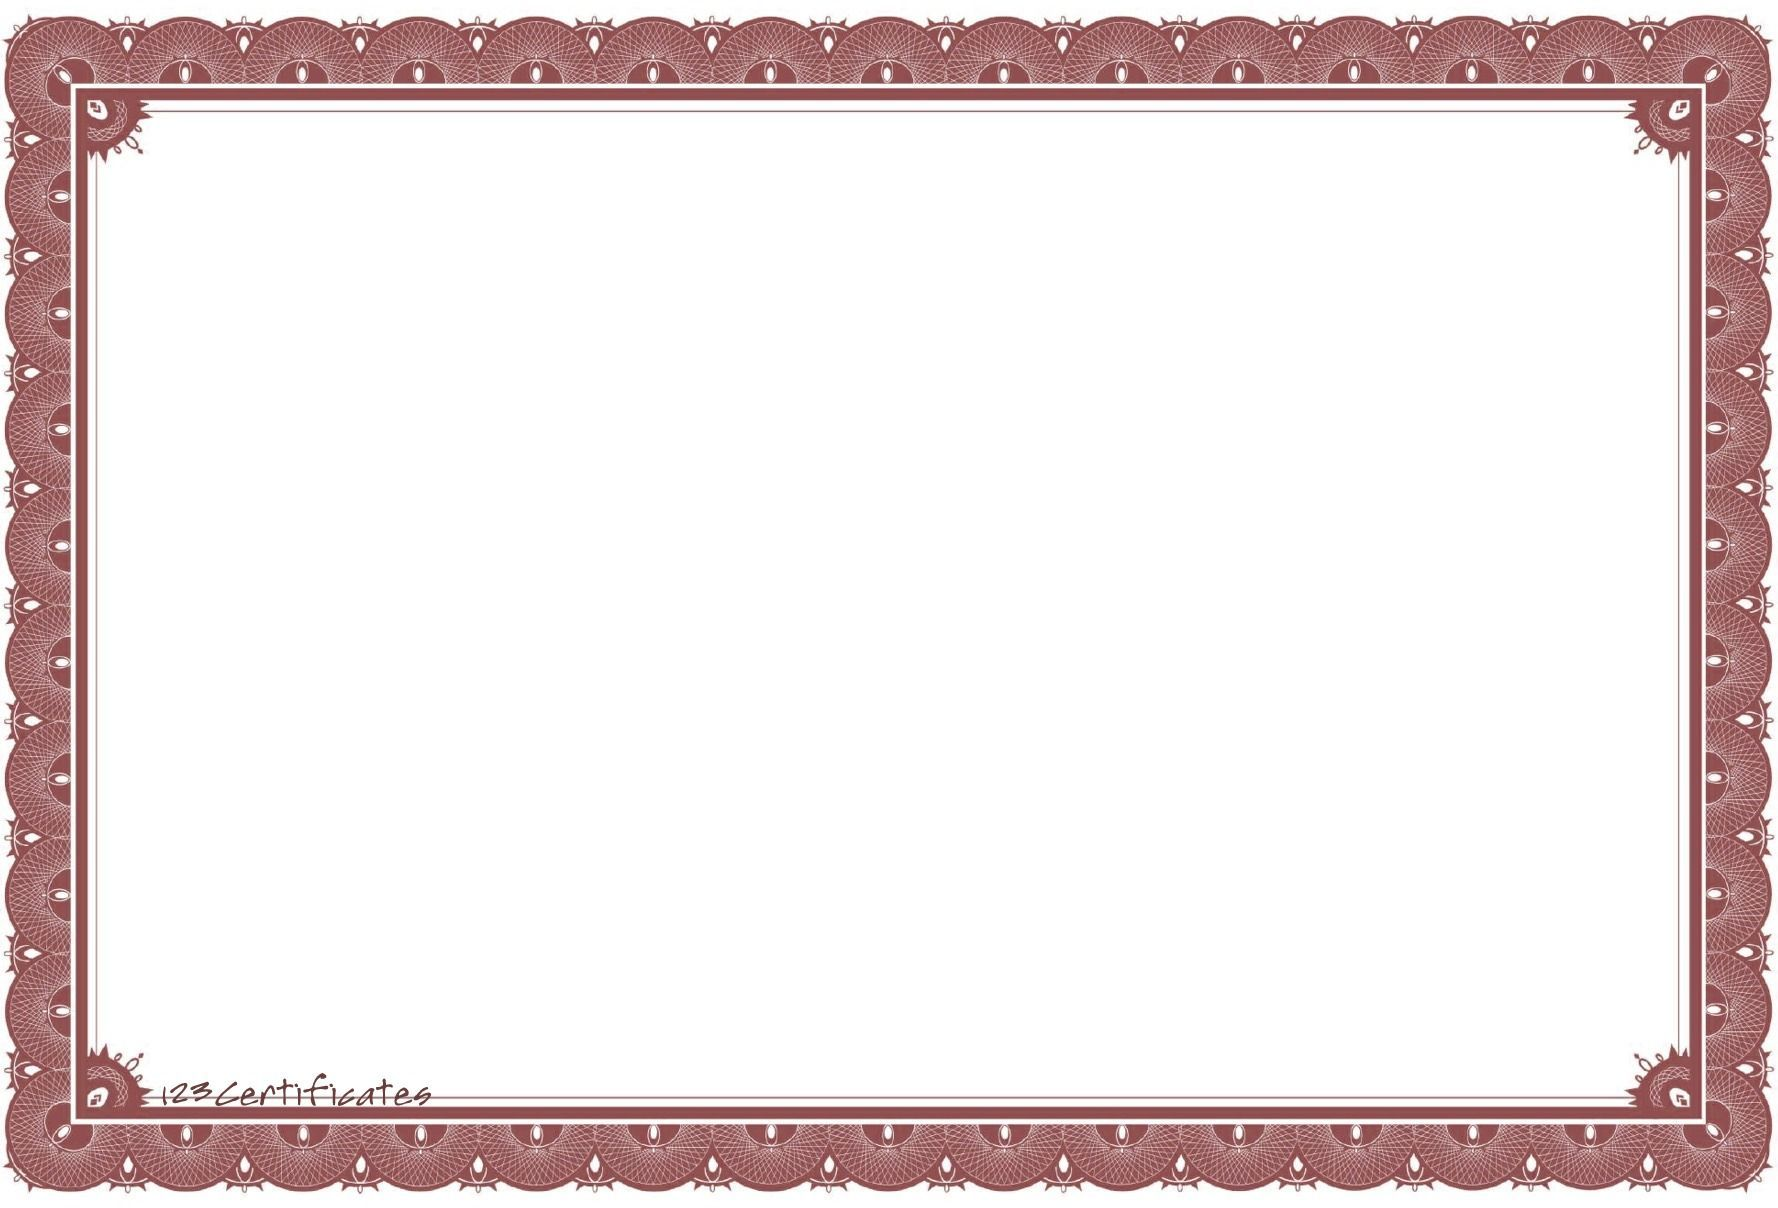 Free clipart certificates template vector free stock Free certificate borders to download, certificate templates for ... vector free stock